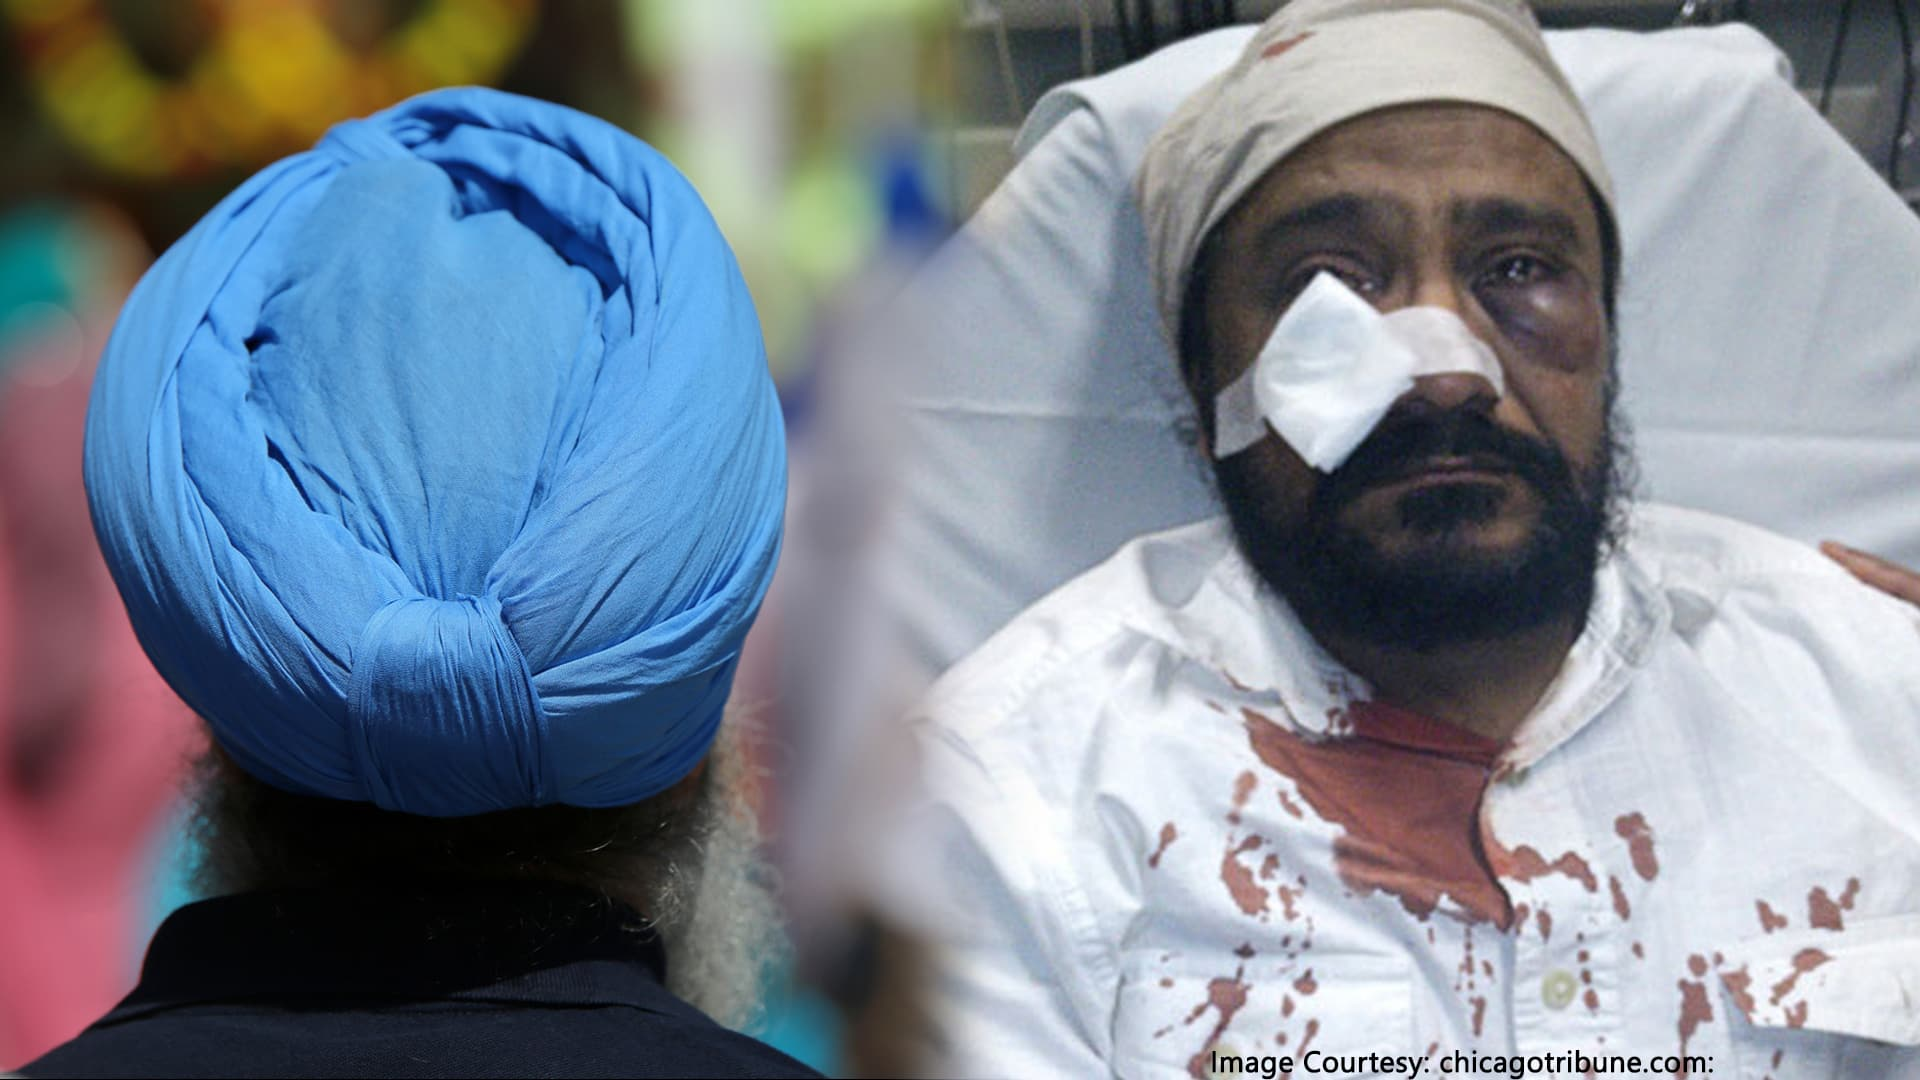 Hate crime: My turban saved me, says Sikh man attacked in US